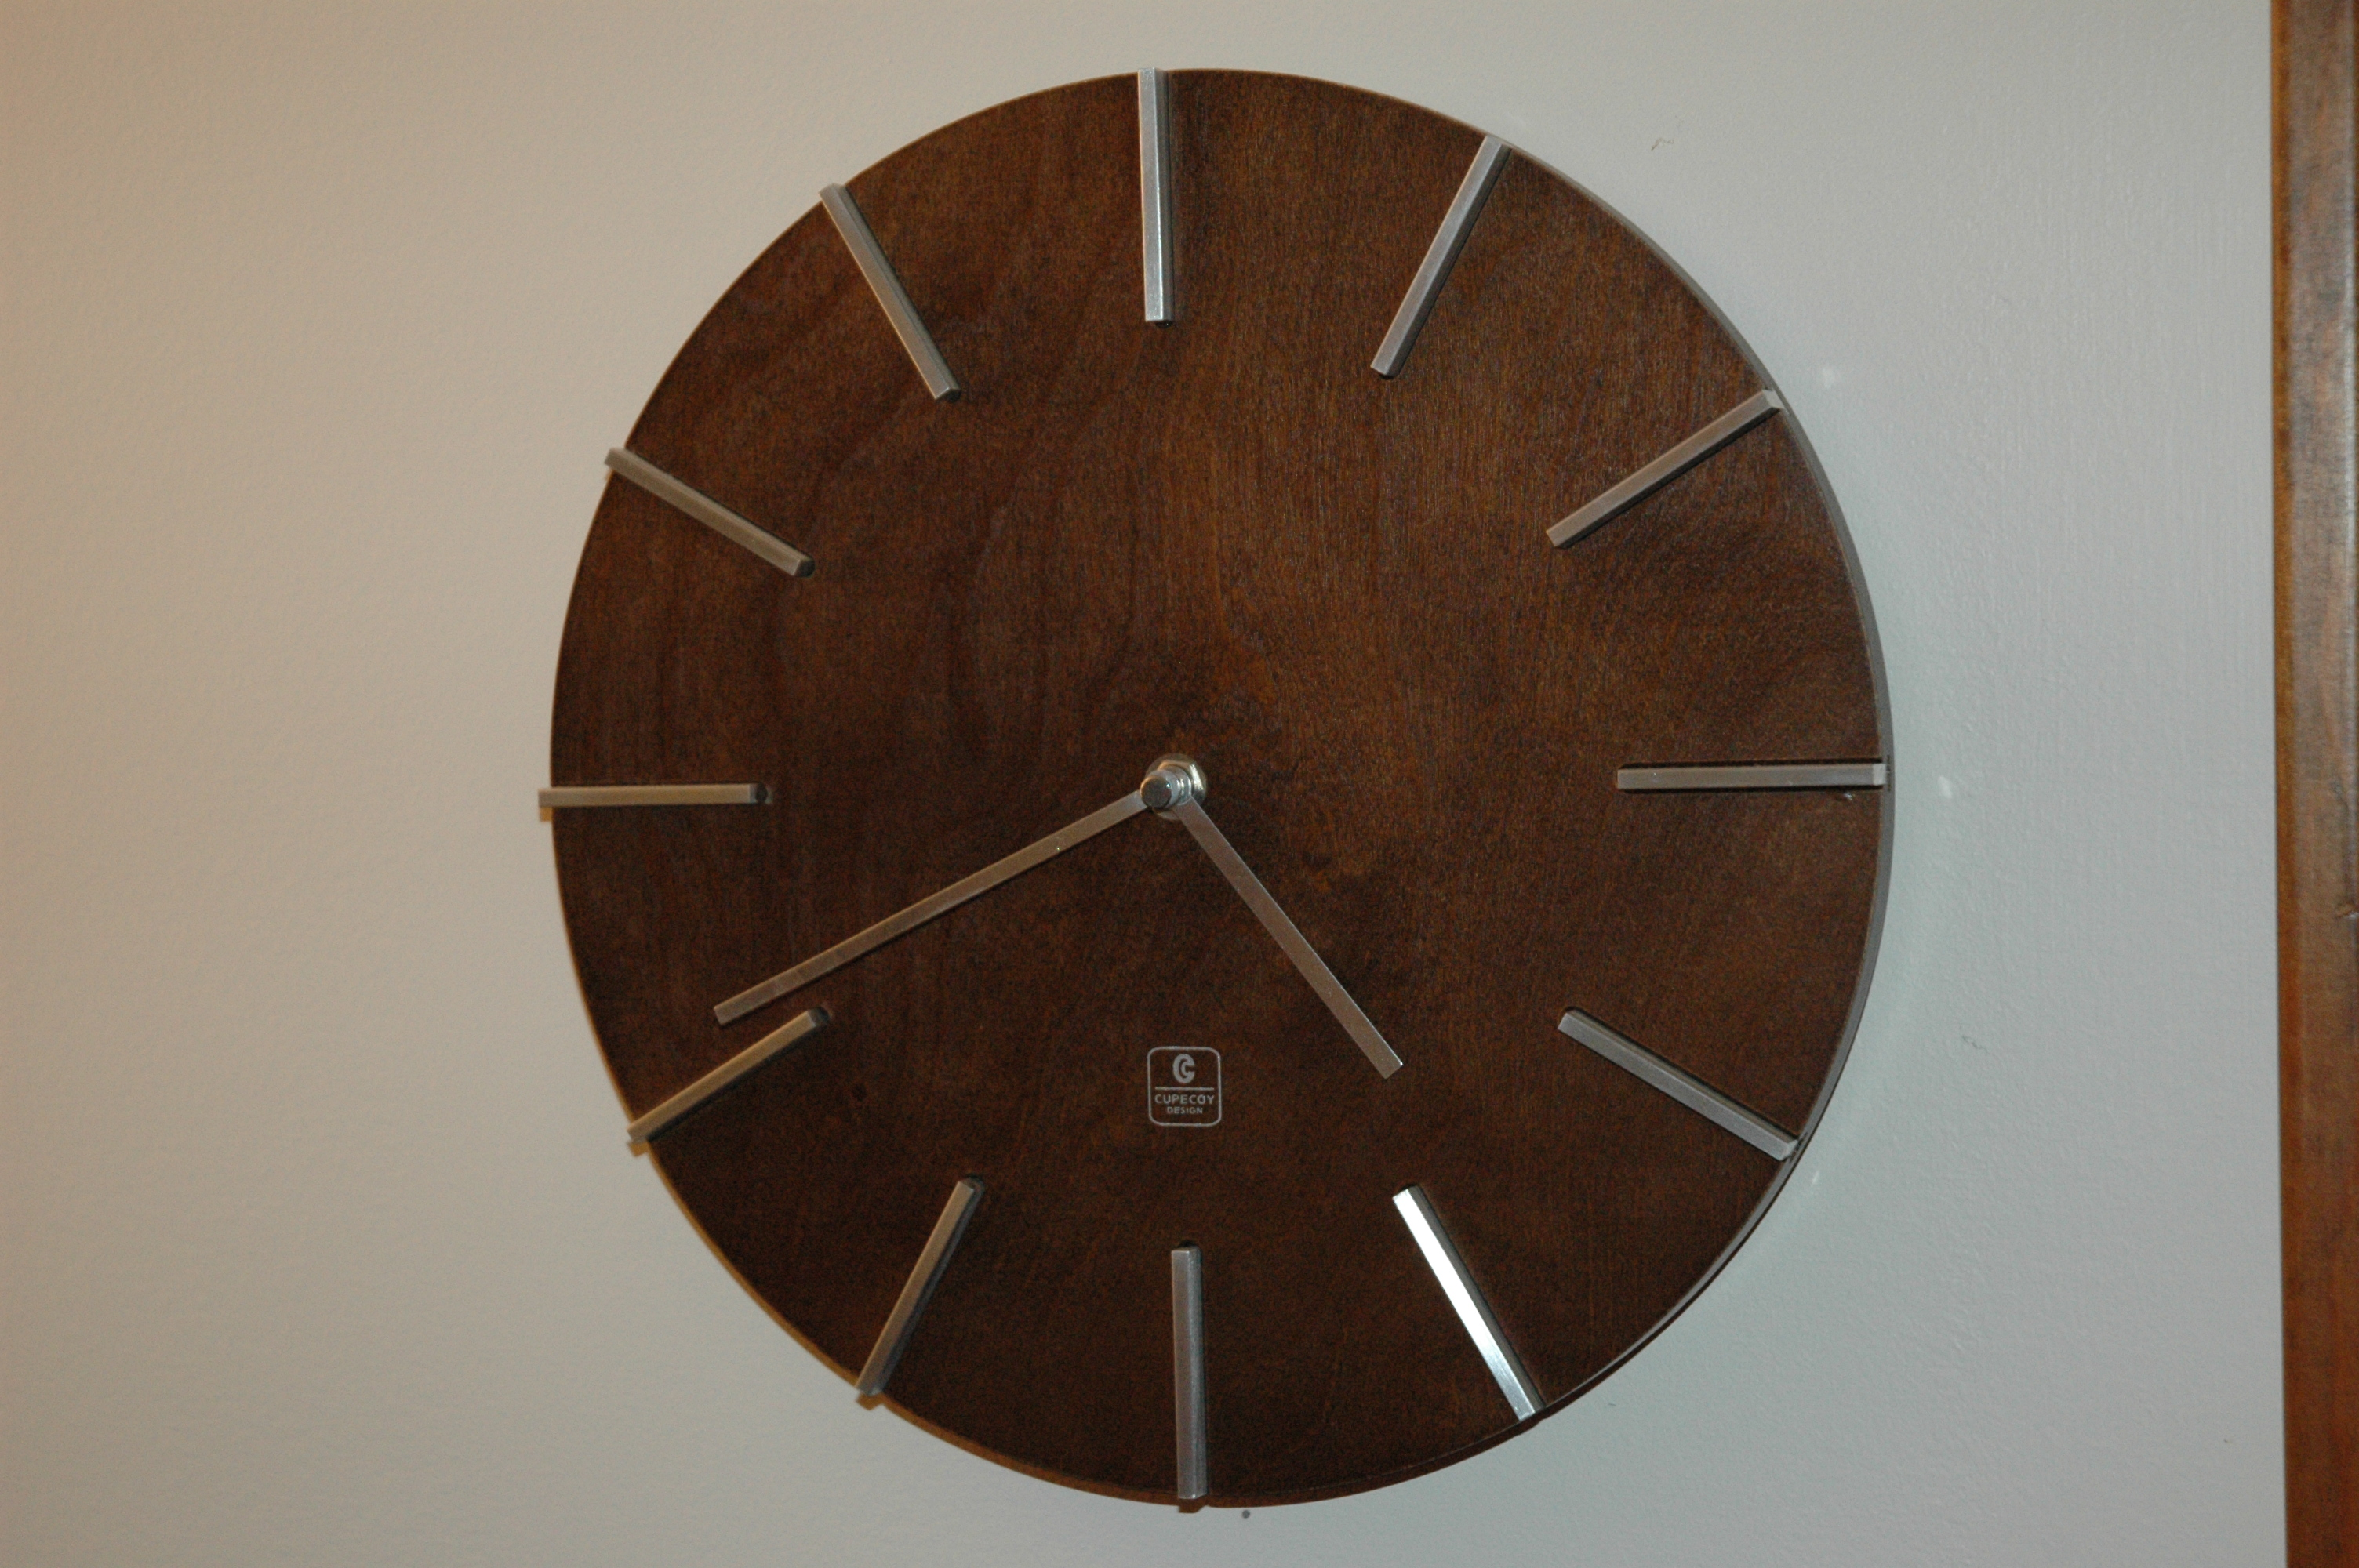 Help with wall clocks omega forums a few weeks after i bought my first constellation i had to laugh when i realized its dial was very similar to that of the wall clock amipublicfo Images